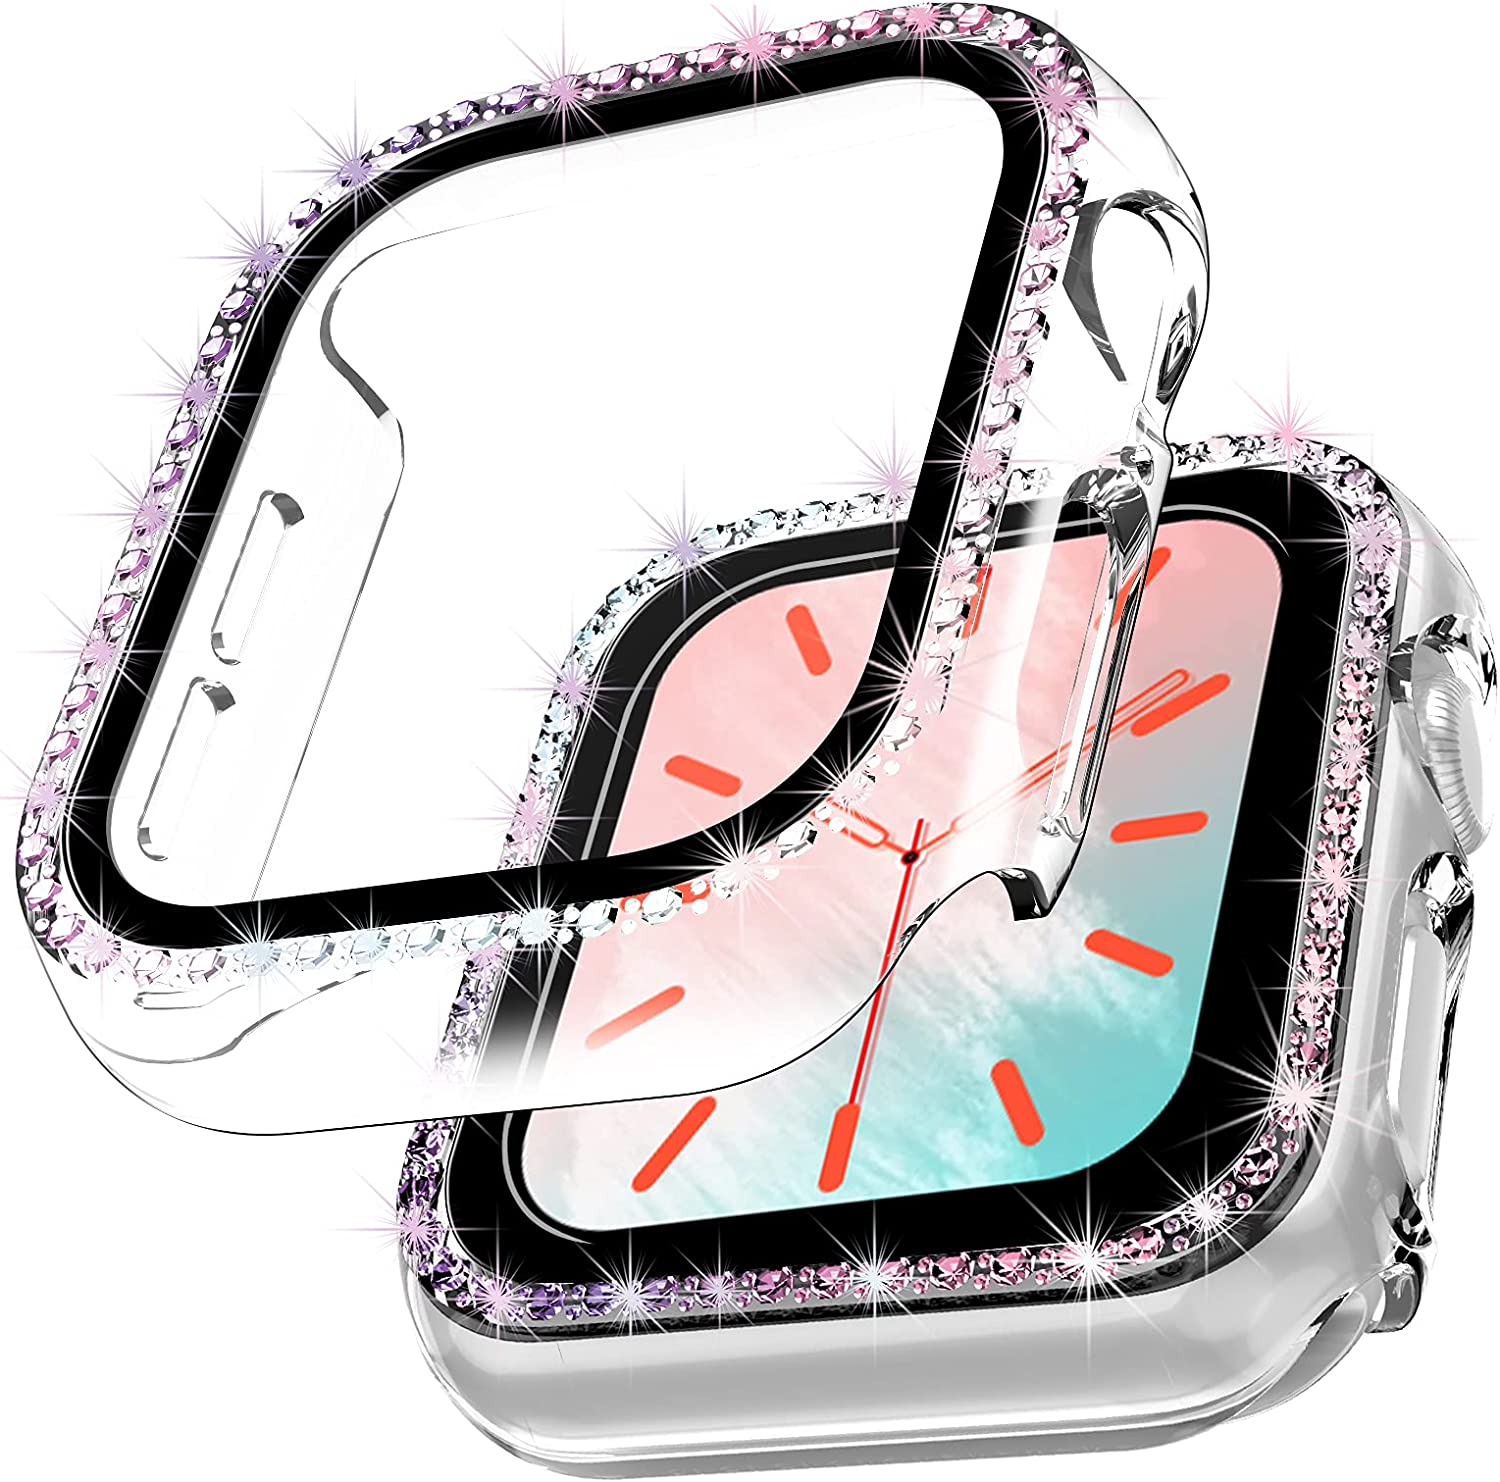 TOCOL [2 Packs] Case Compatible with Apple Watch Series 3/2/1 42mm with Built-in Tempered Glass Screen Protector [Multicolor Bling Diamond] Face Cover for Women Girls - Clear/Rainbow